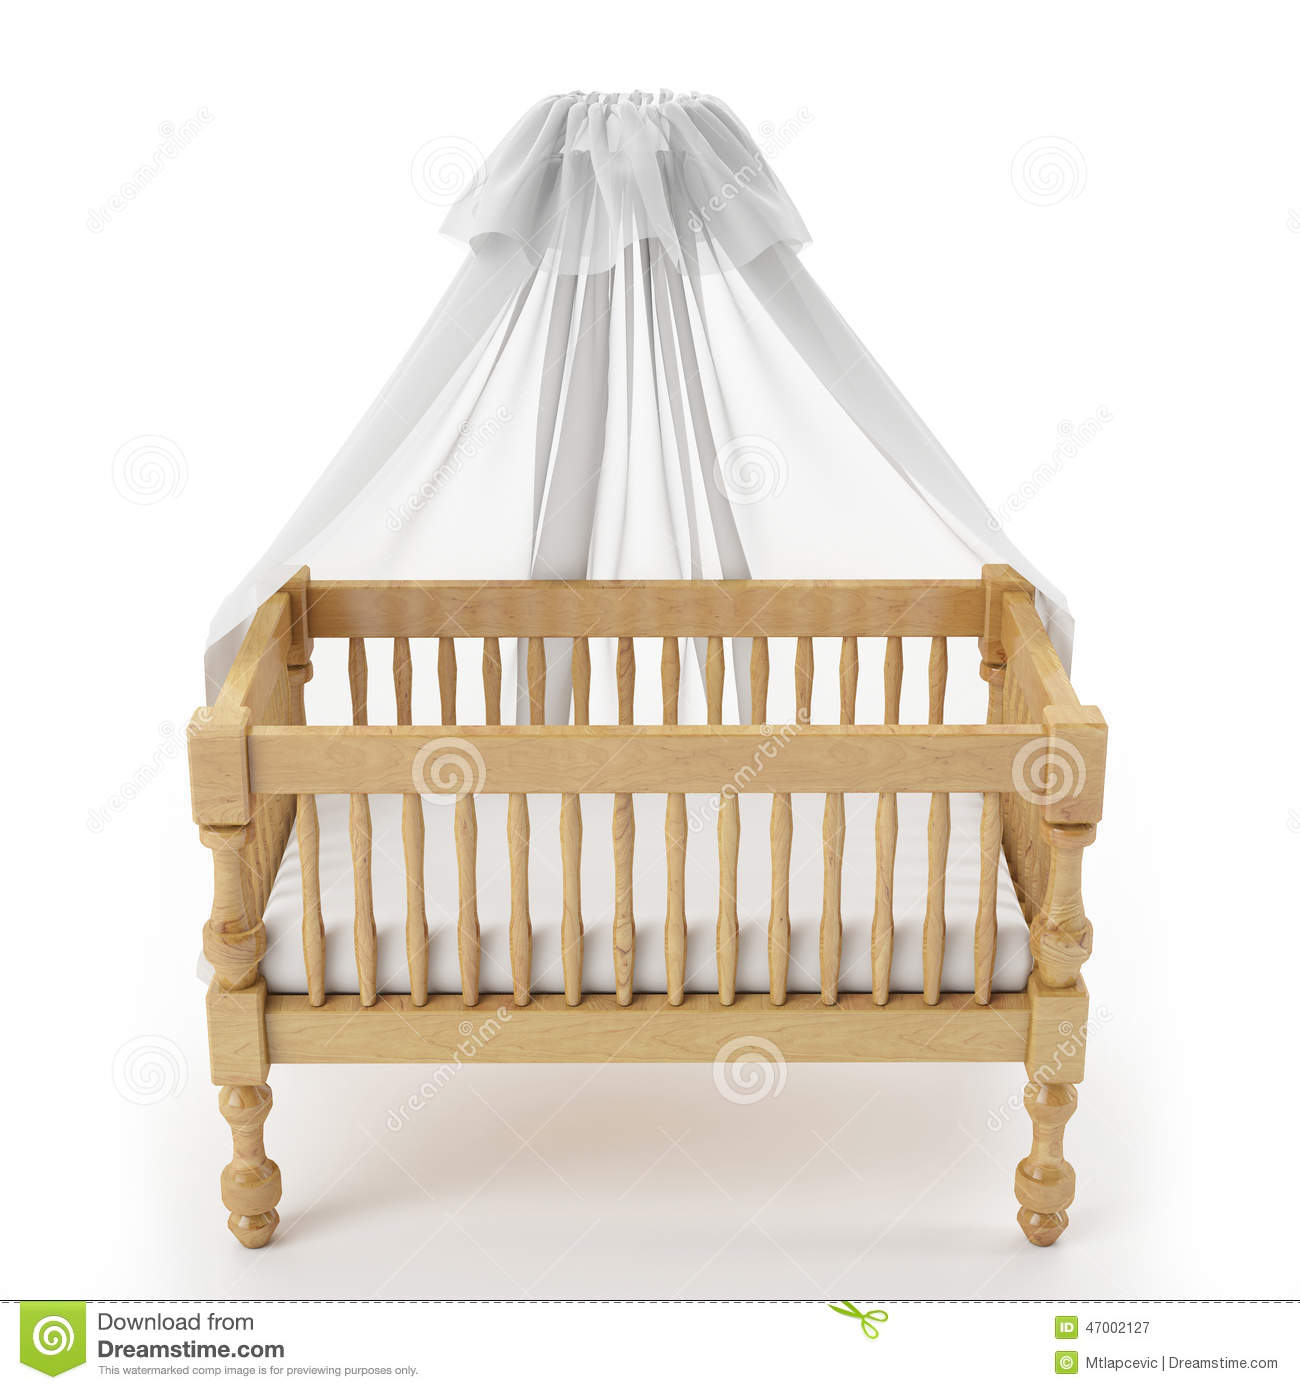 Baby cribs with canopy - Wooden Baby Crib With Canopy Isolated On White Background